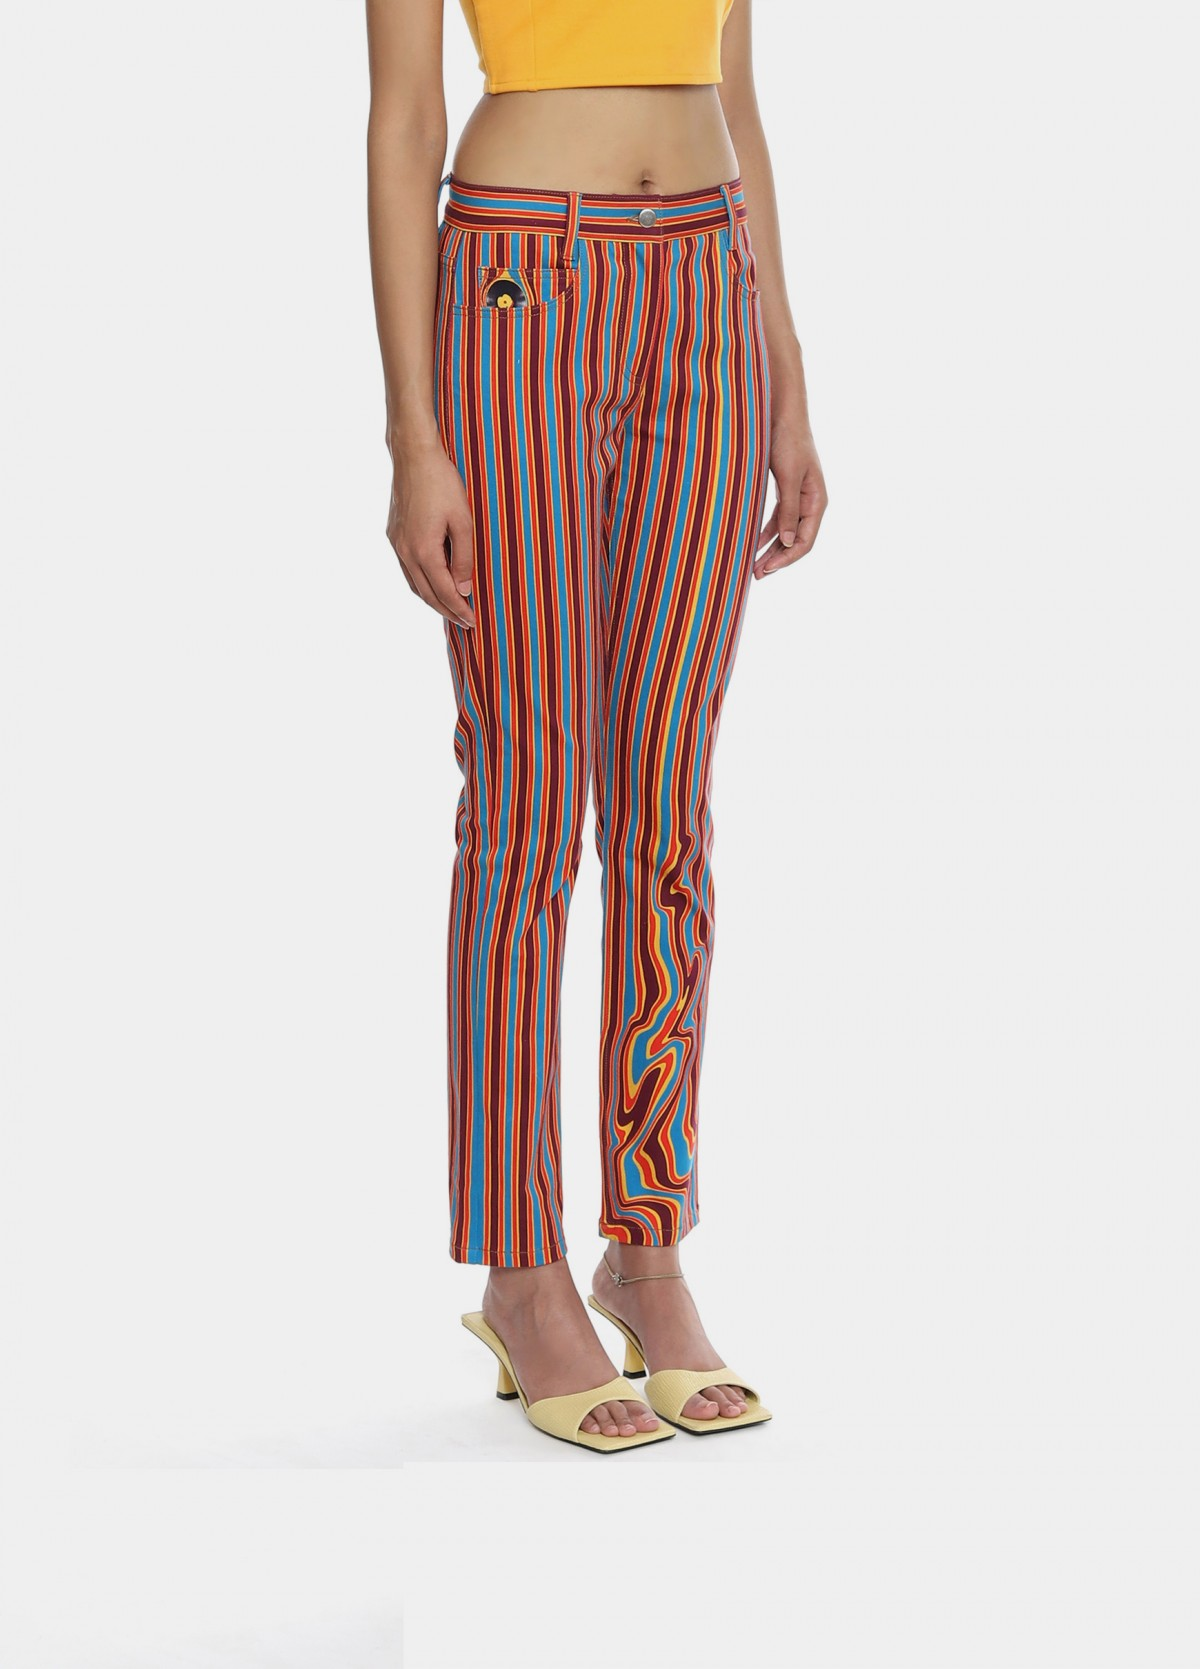 The Night Fever Pant